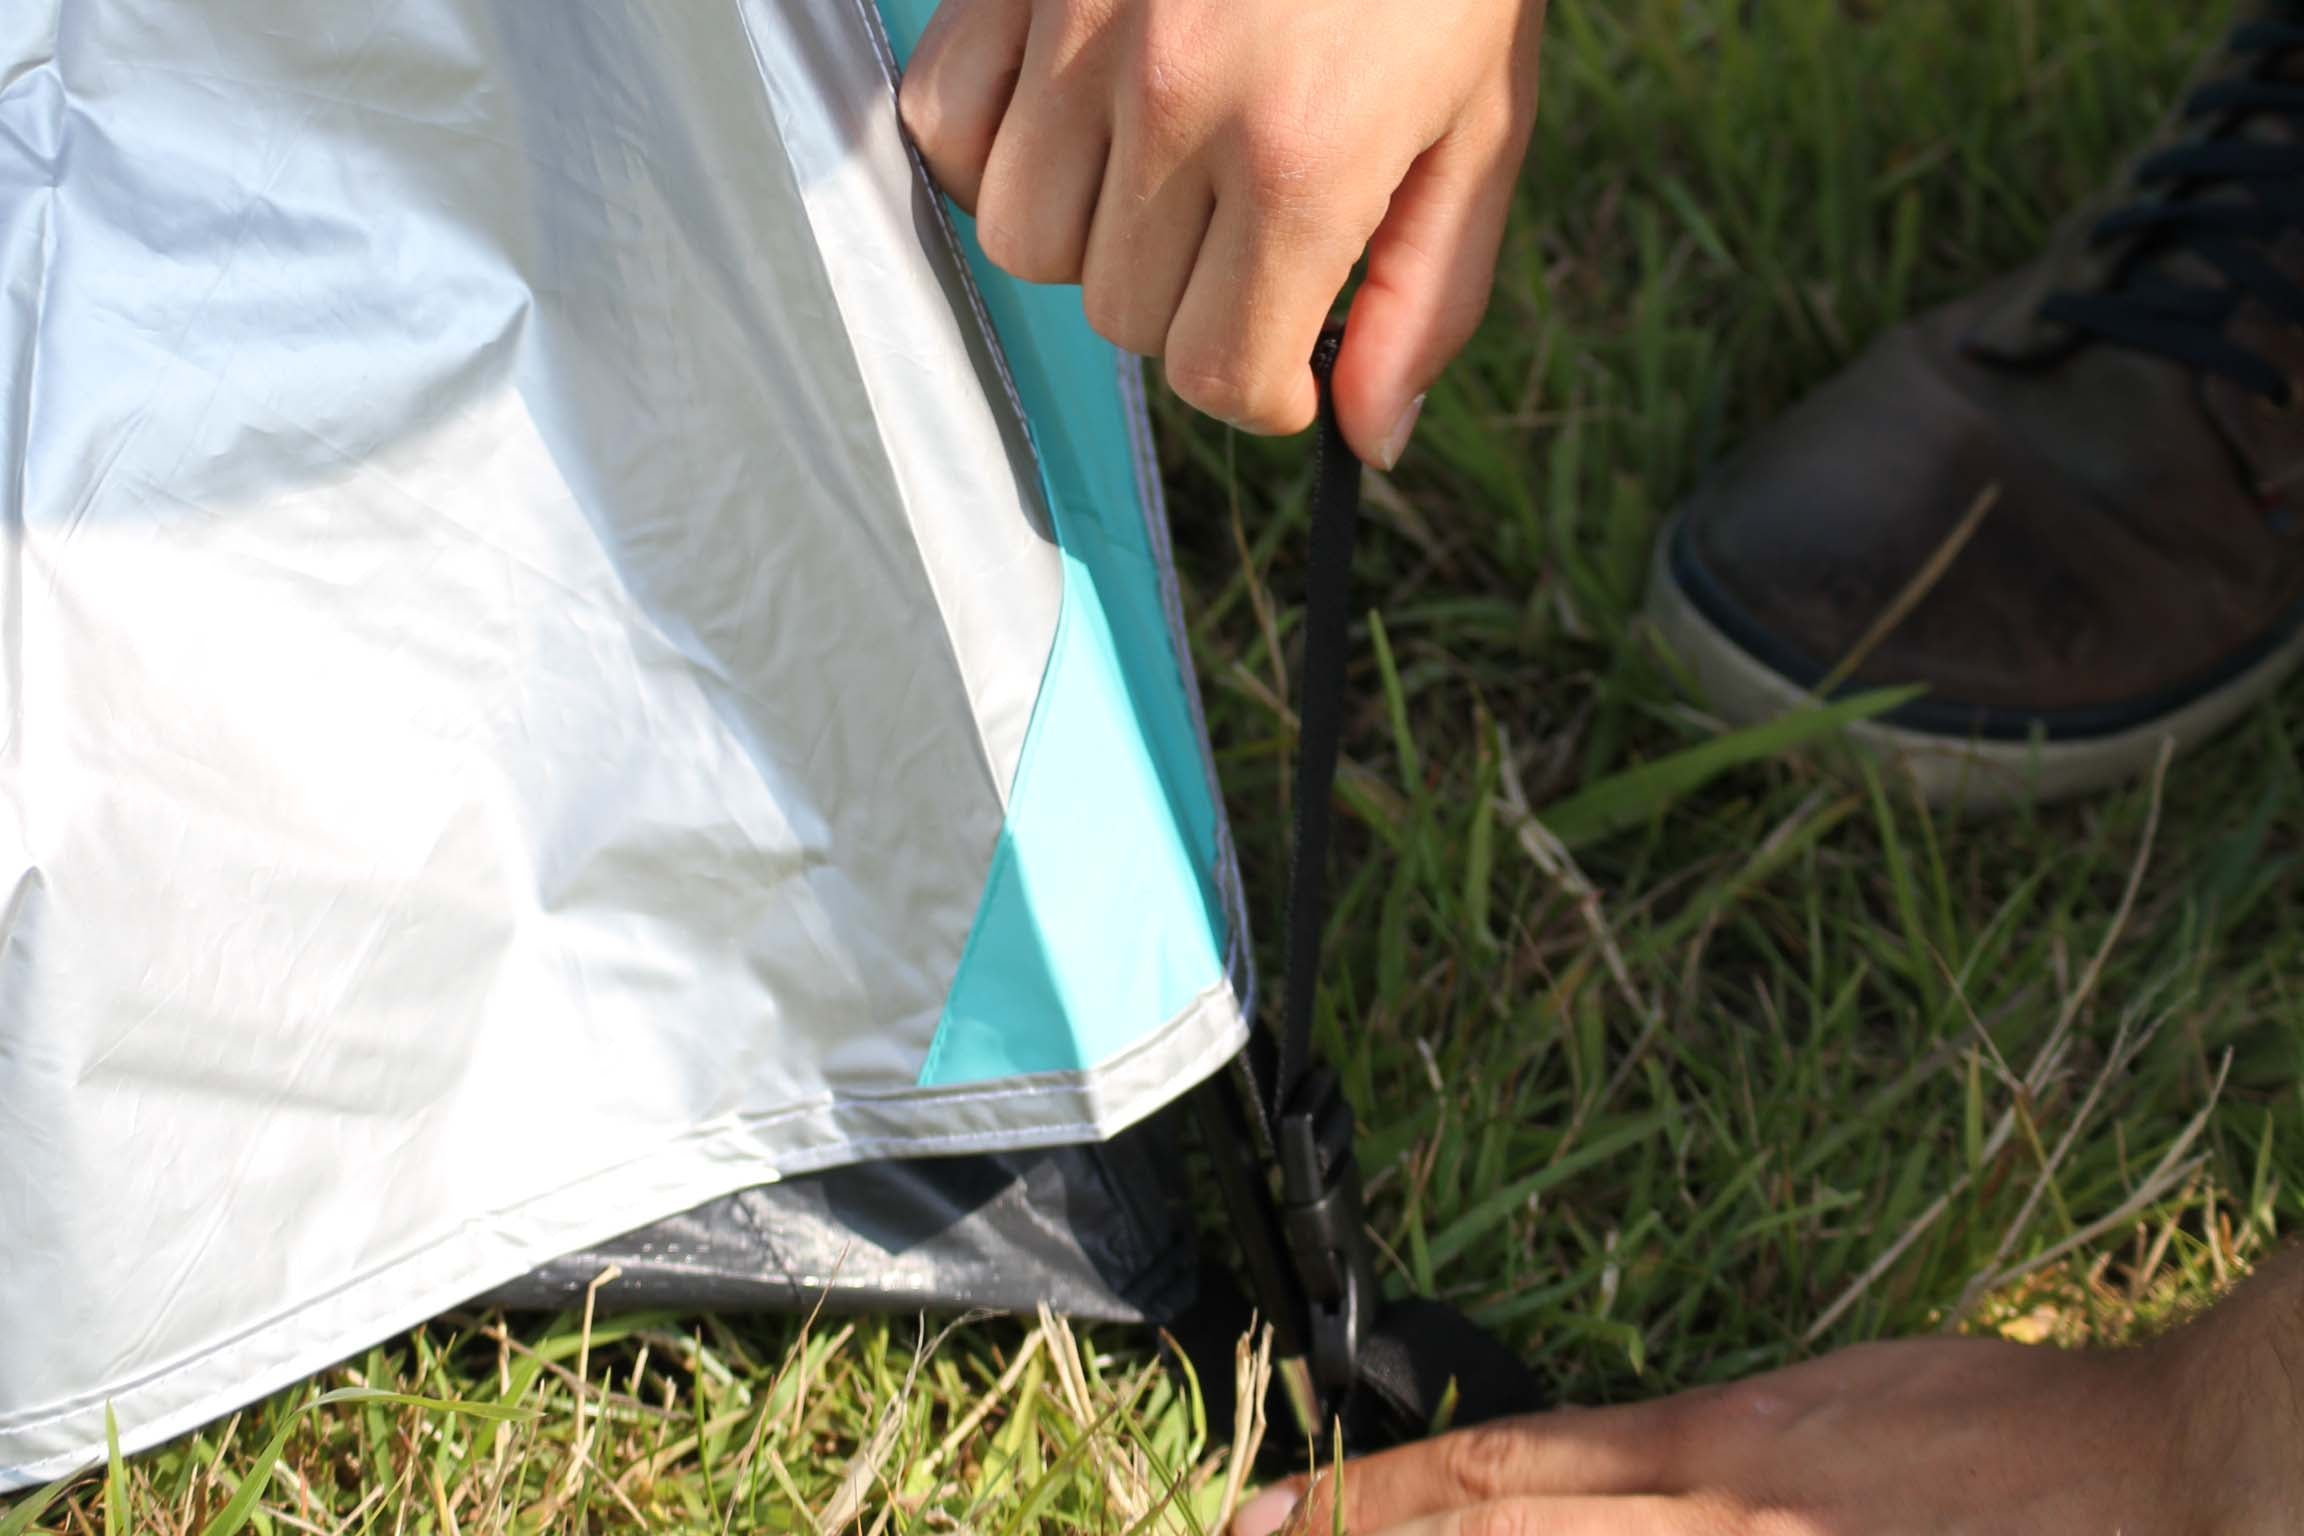 Tighten the straps to secure the outer tent